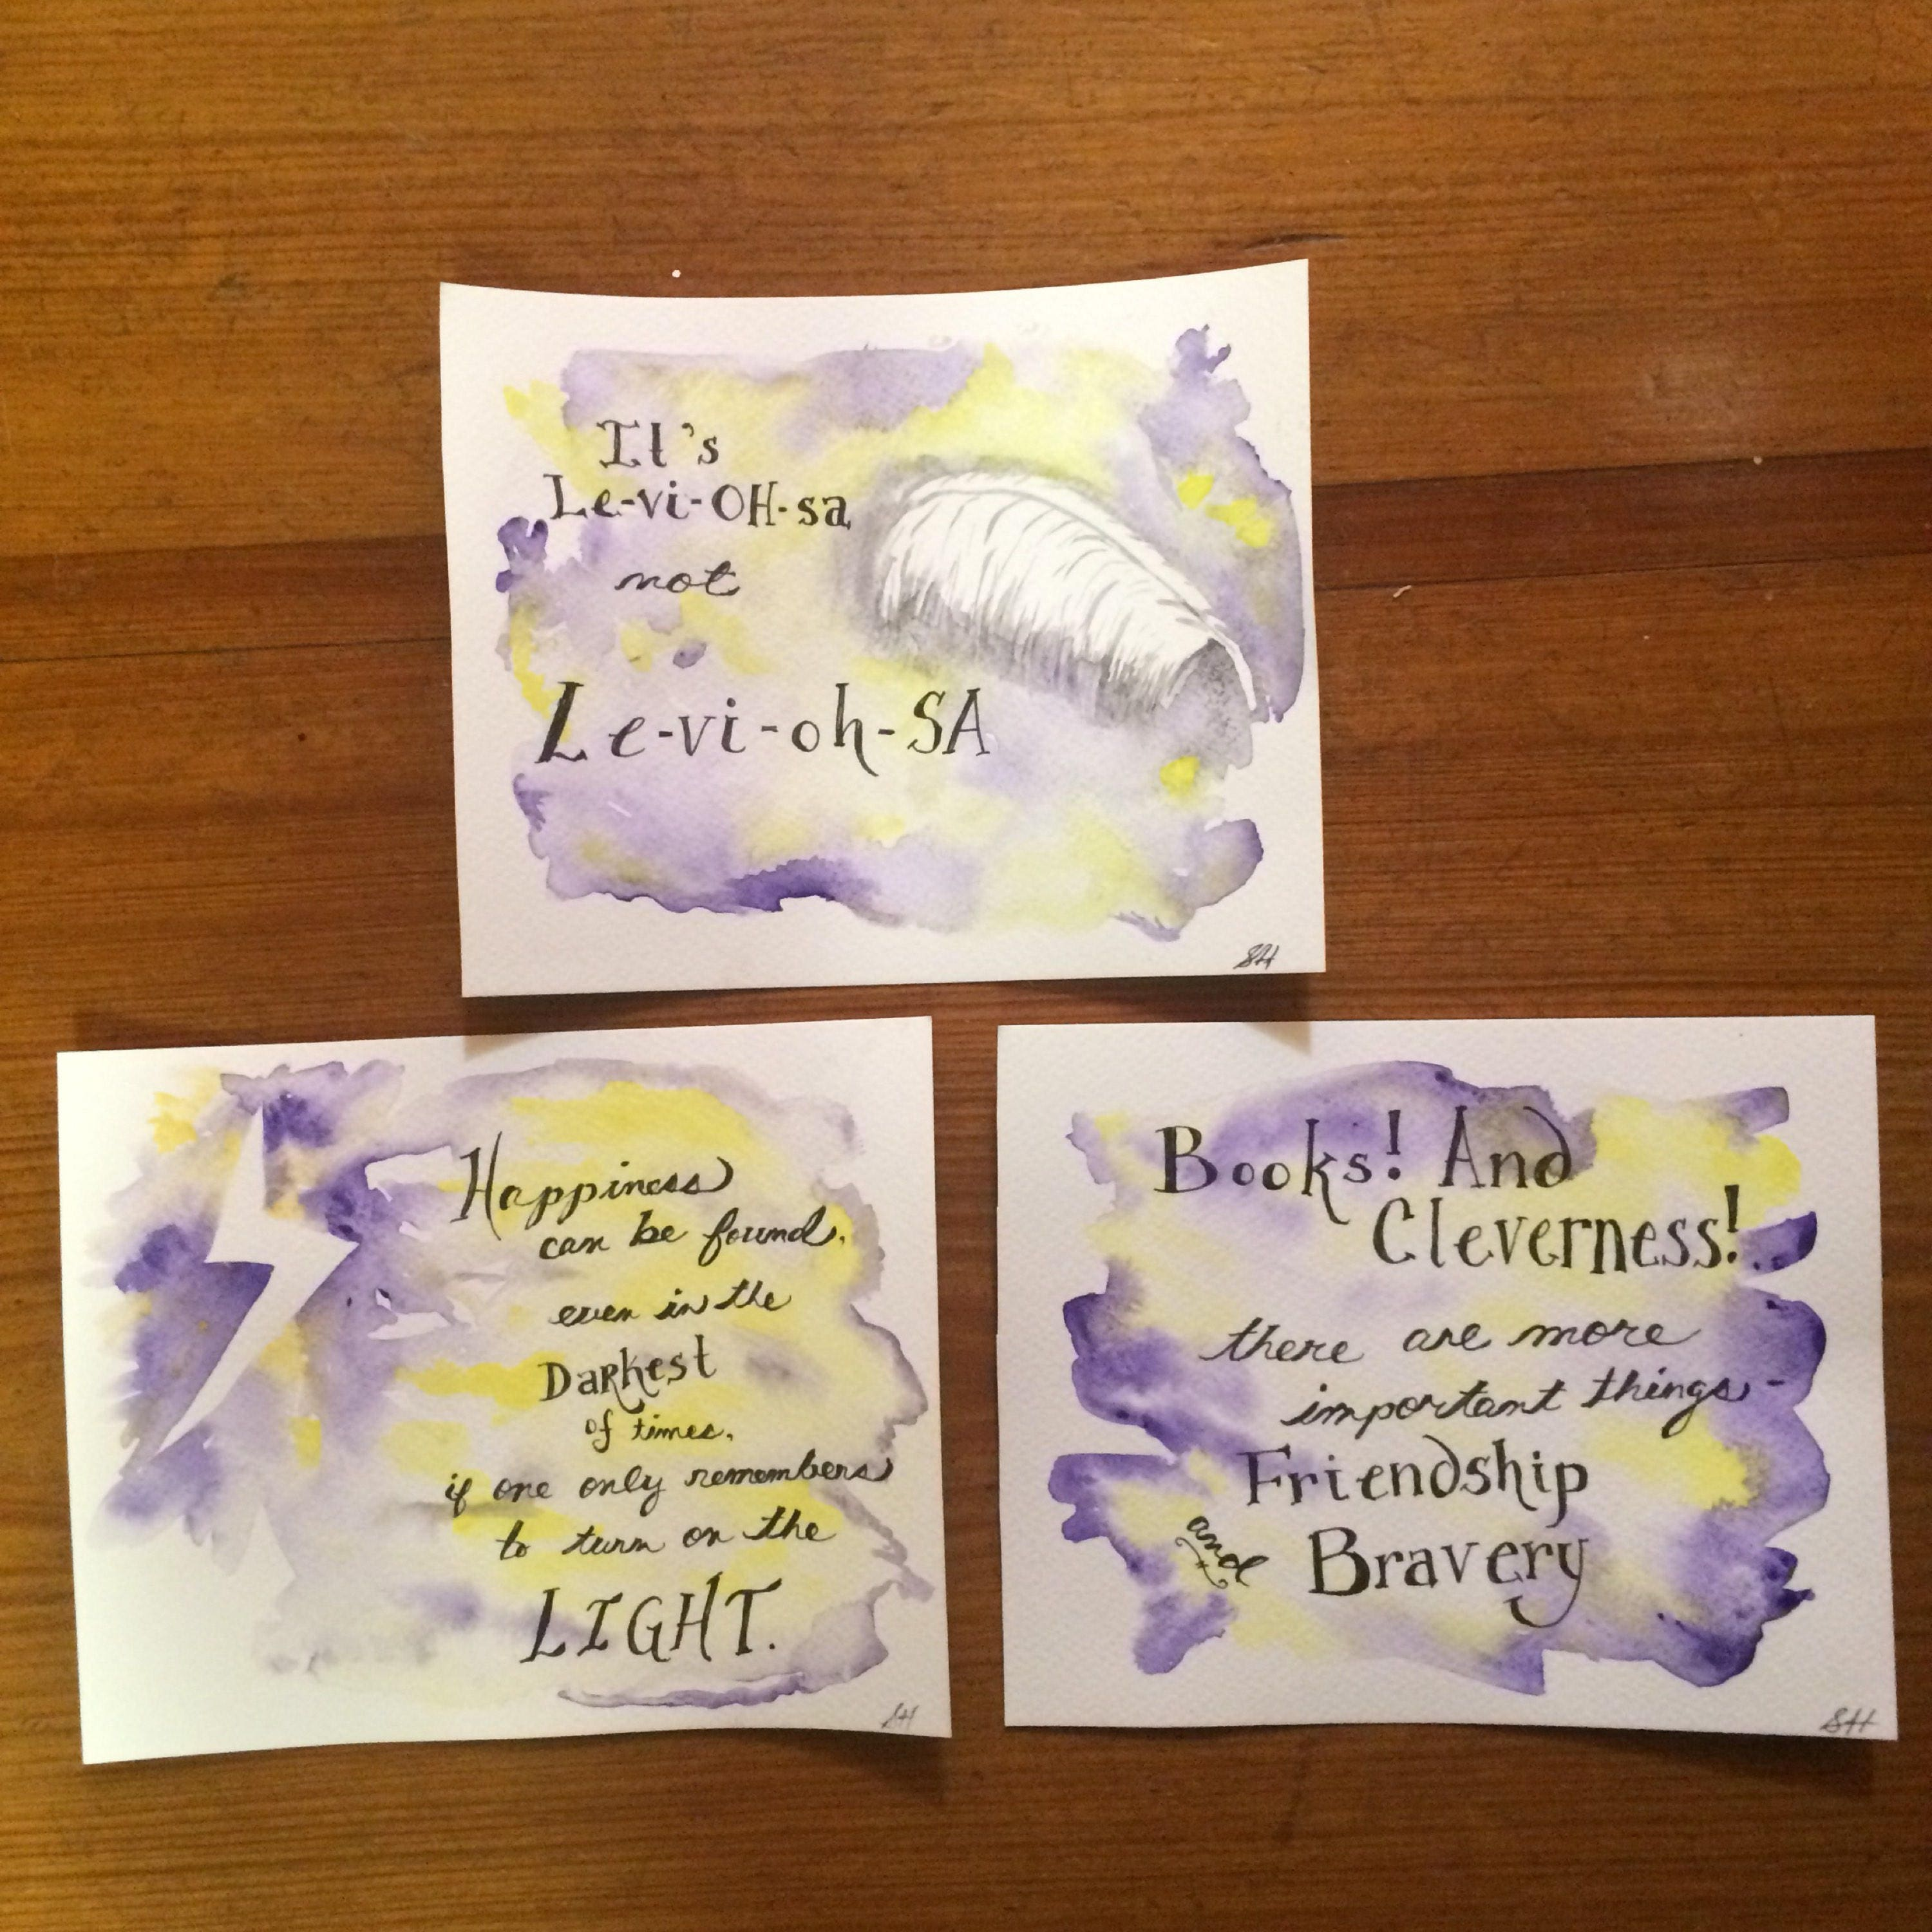 Harry Potter Book Quotes Original Harry Potter Inspired Quote Watercolor Painting Hand